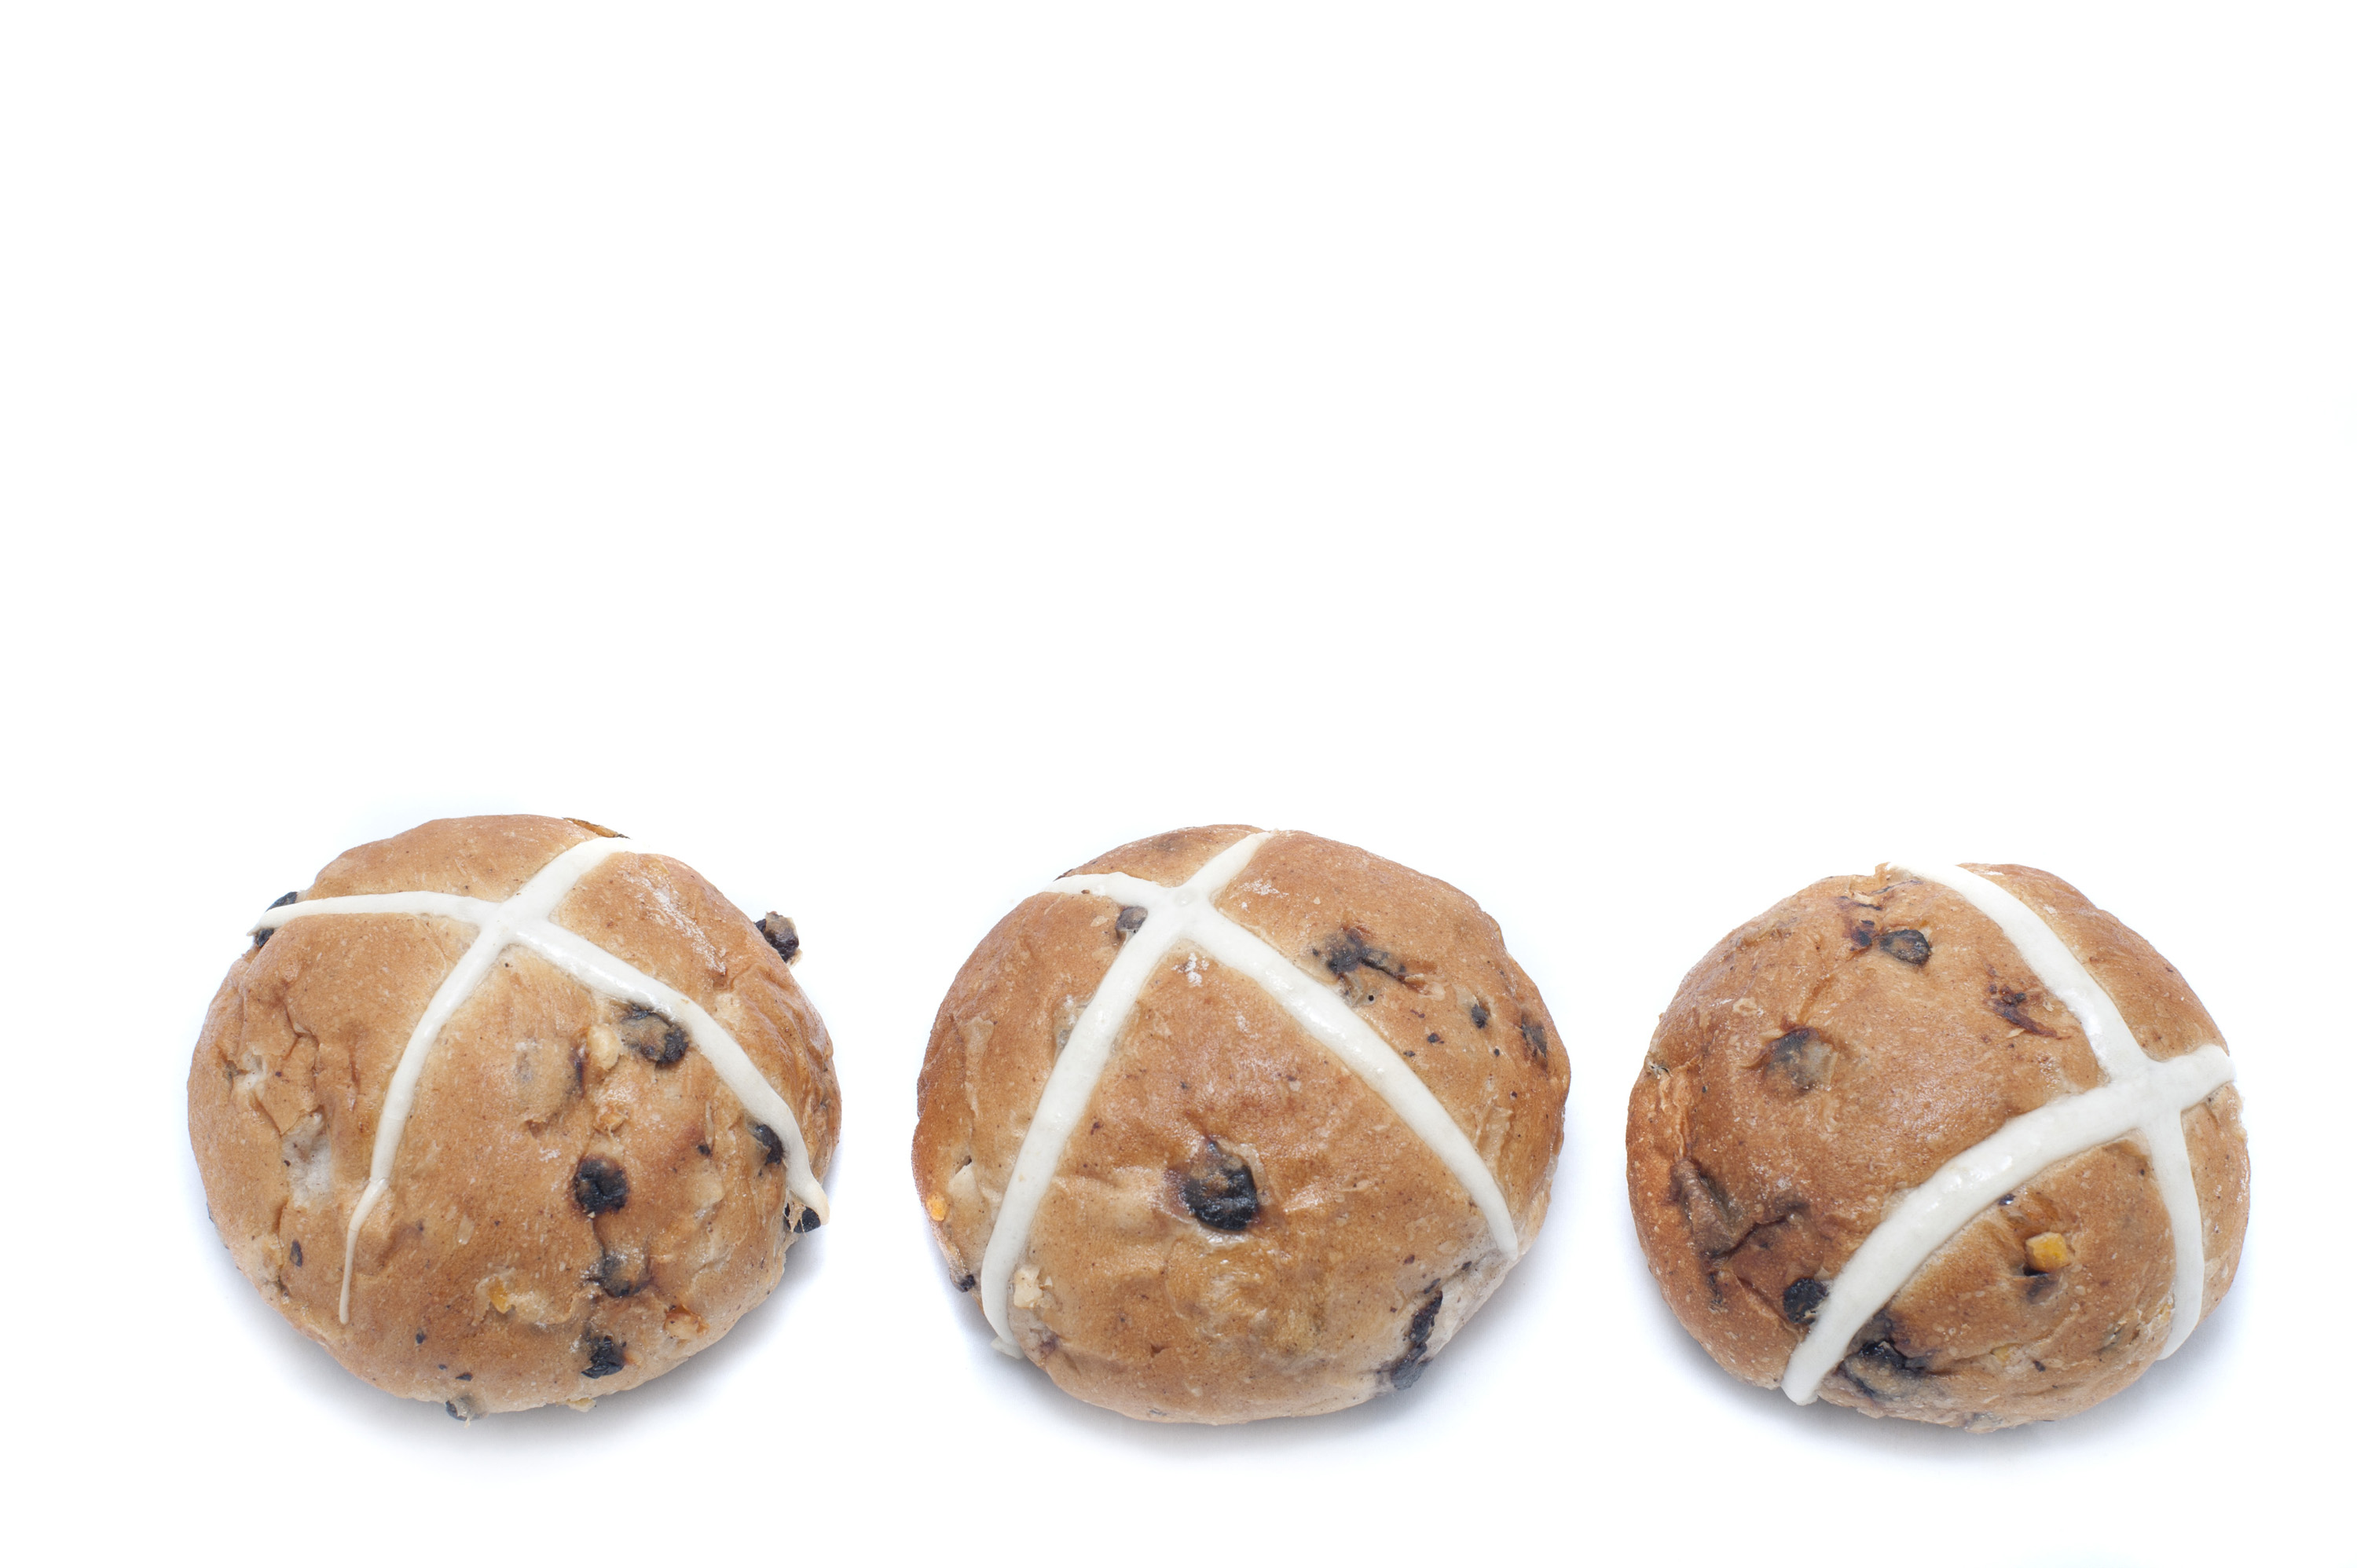 three_hot_cross_buns.jpg - Border of three freshly baked fruity spicy Hot Cross Buns on a white background with copy space for your seasonal greeting